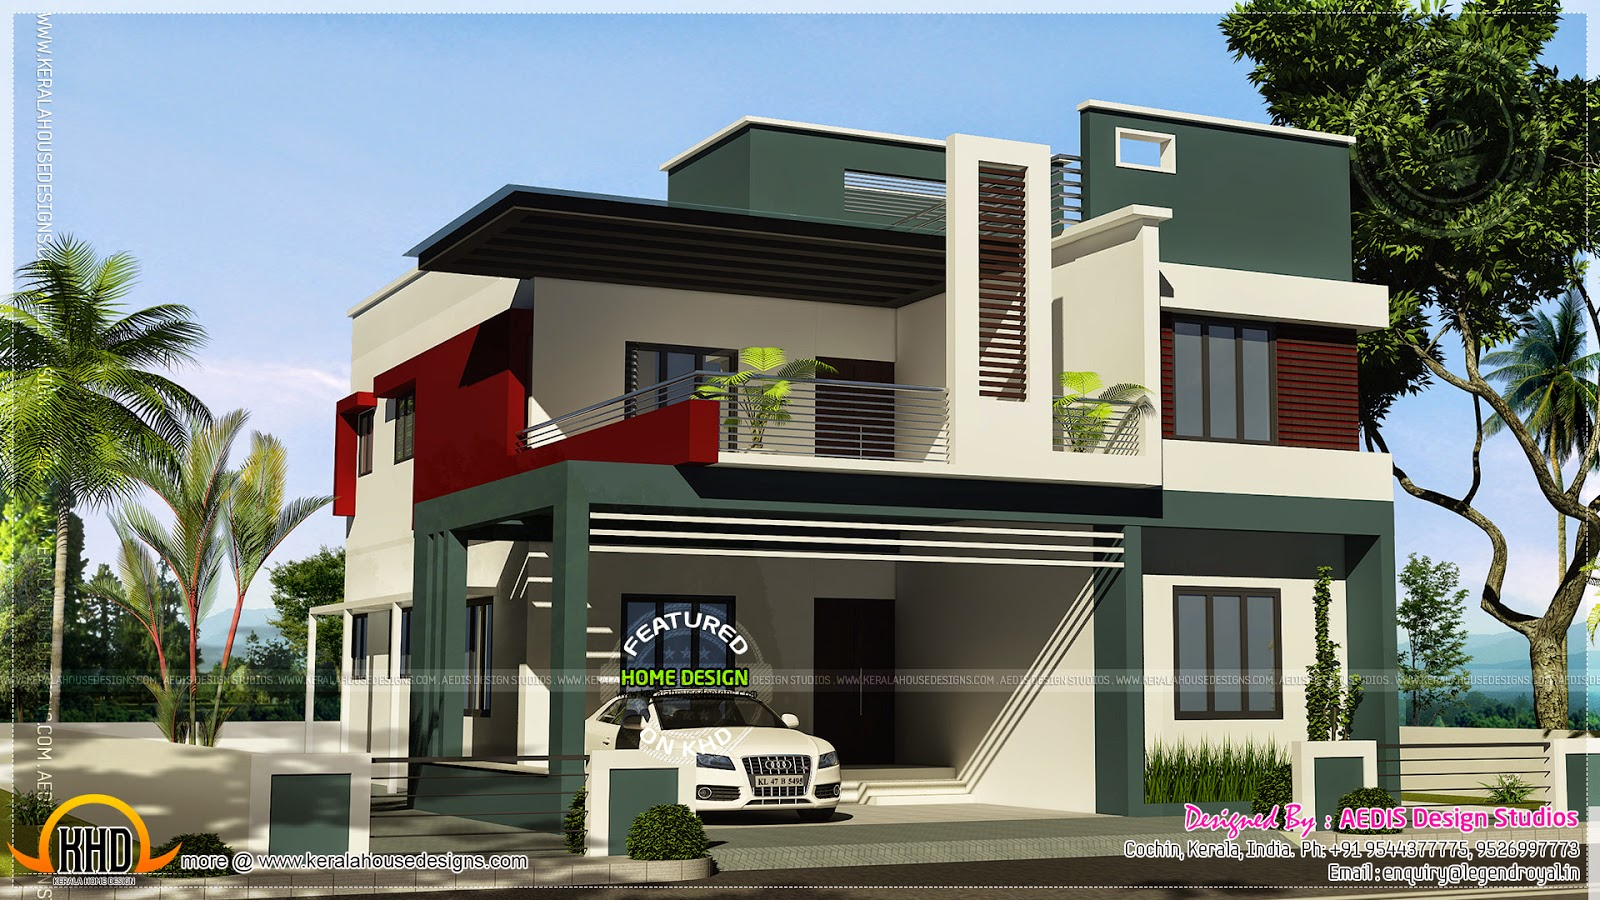 June 2014 kerala home design and floor plans for Best house plans of 2017